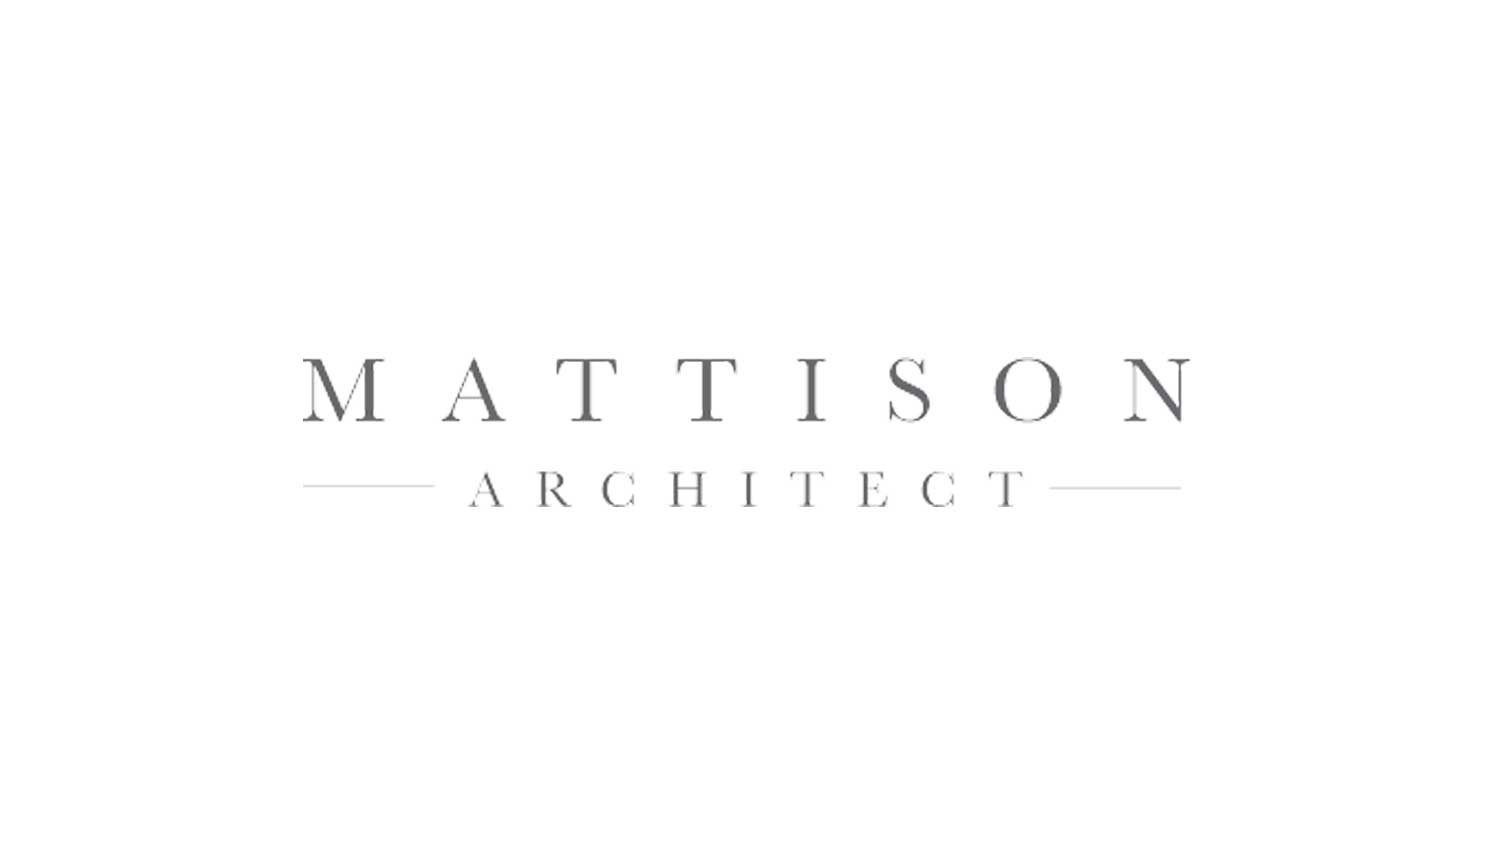 Mattison Architect